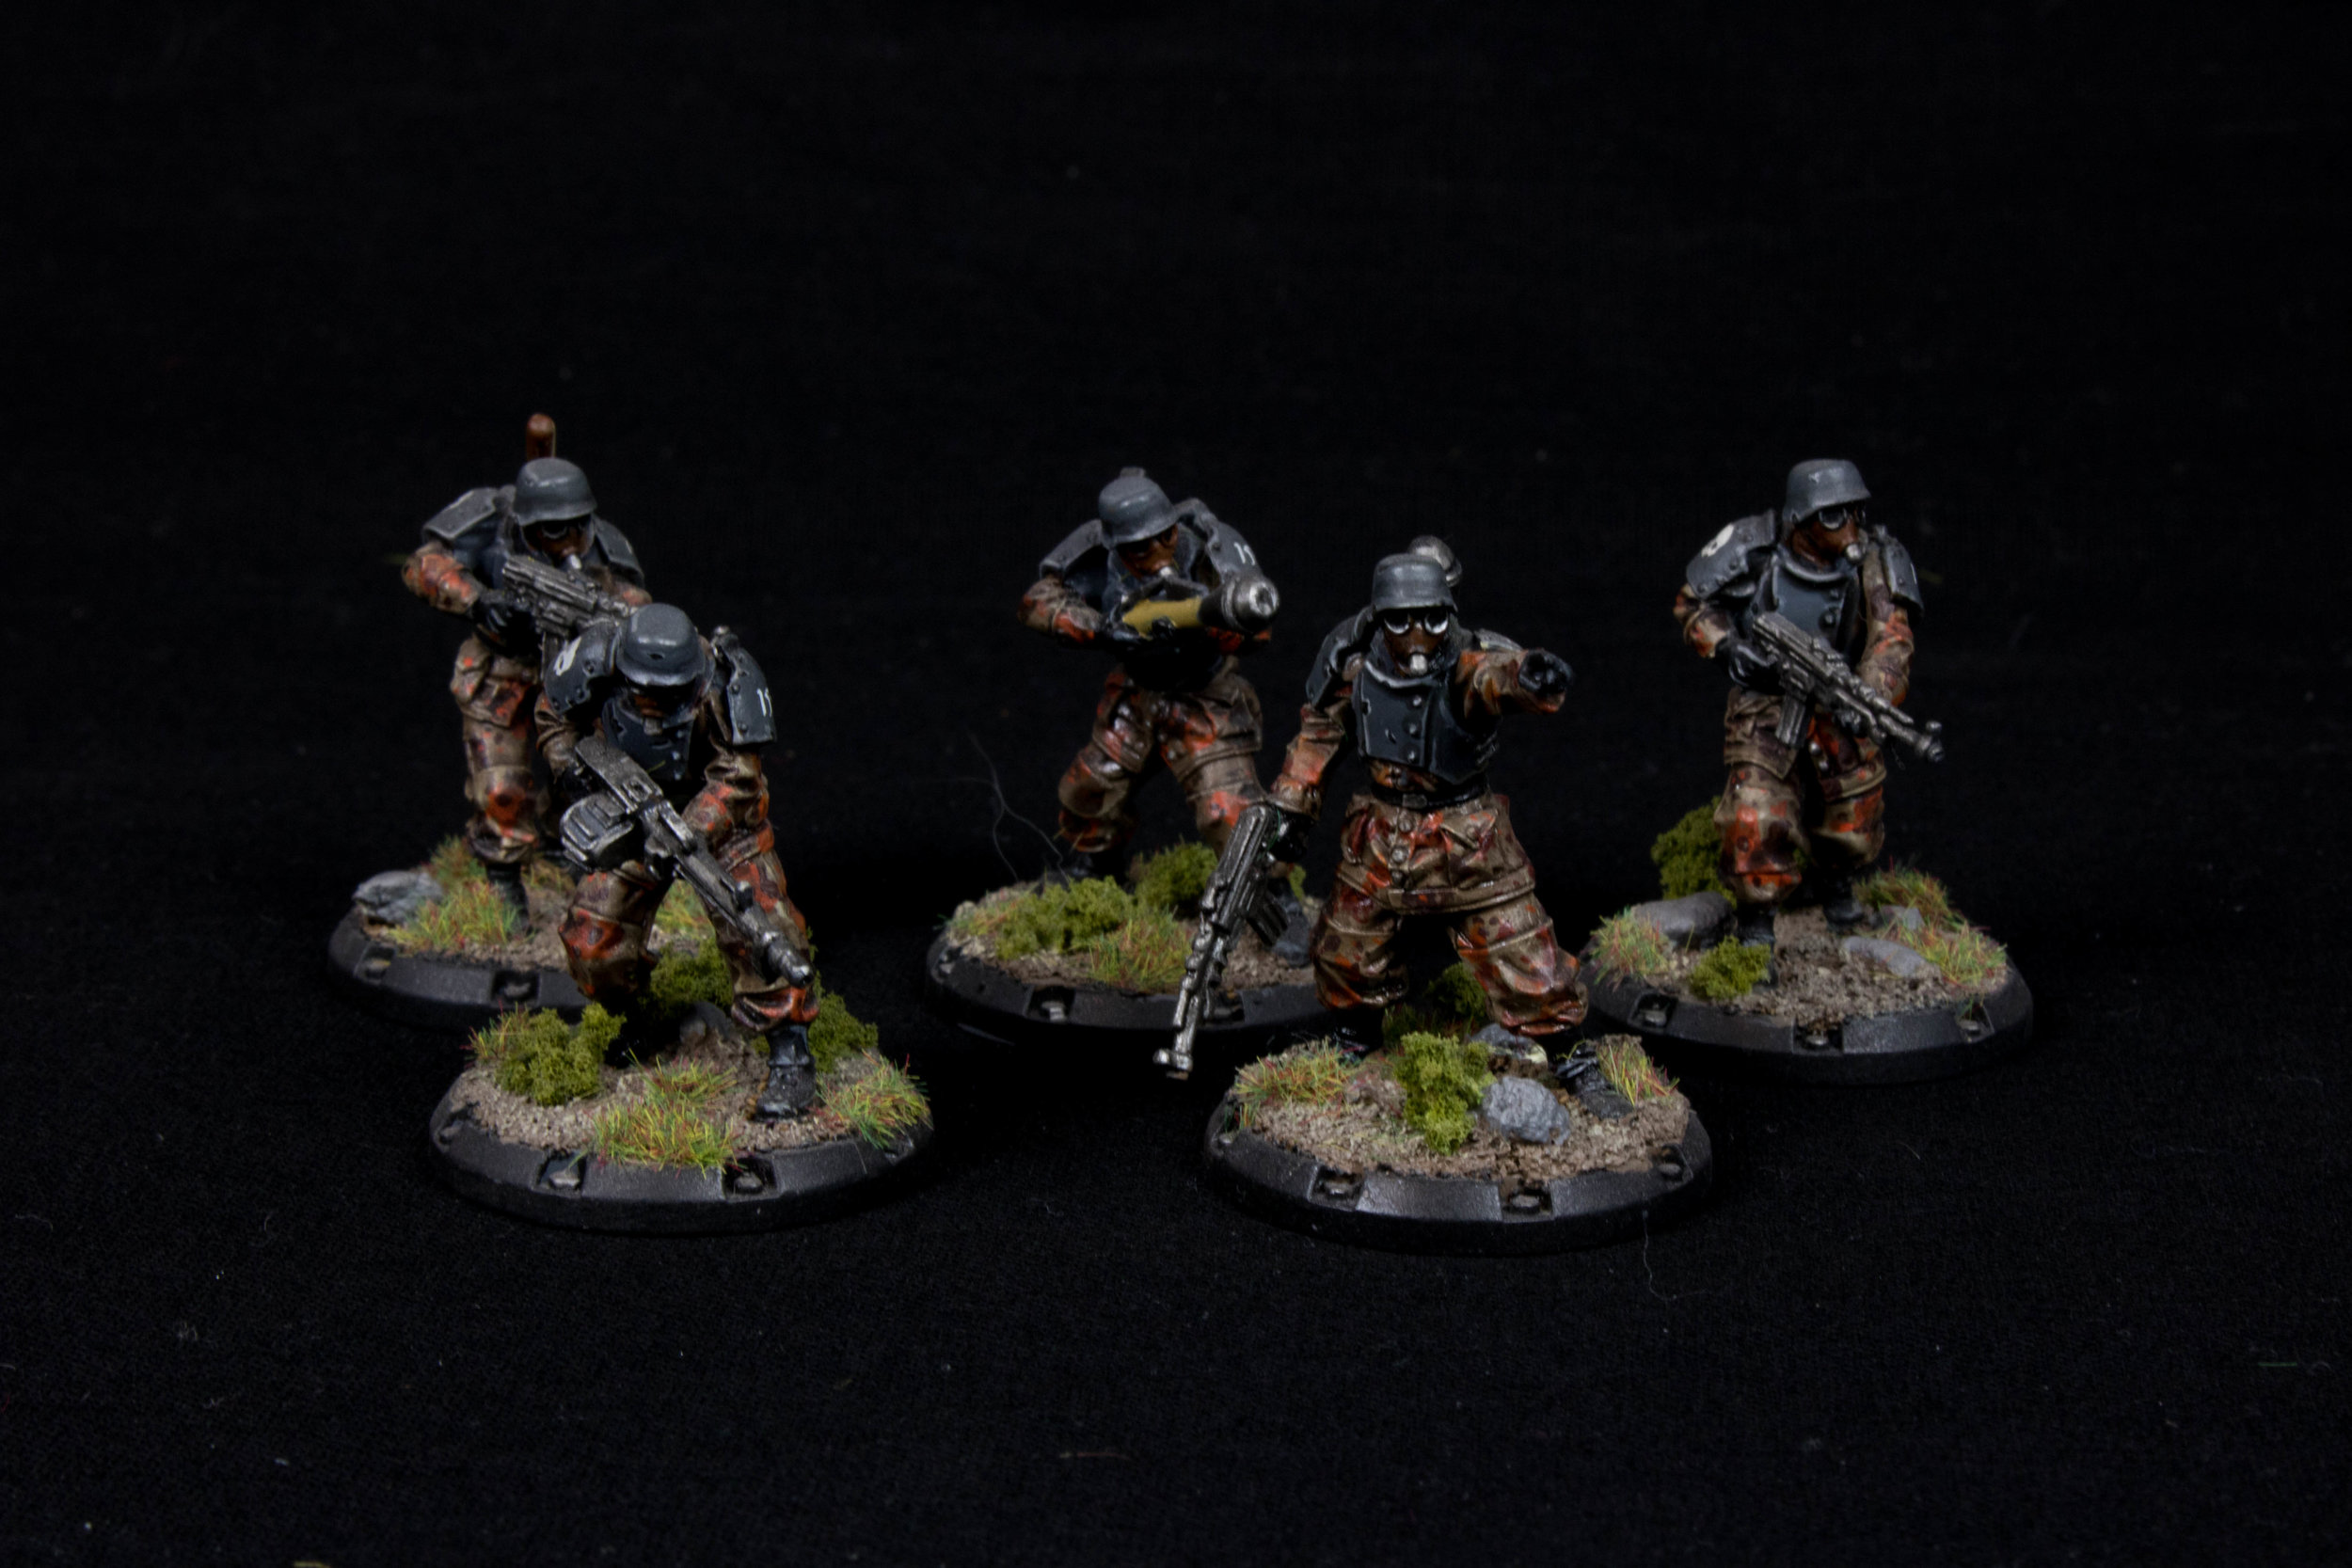 Dust Tactics WWII Warfare Germans Americans Axis Allies Bolt Action 28mm Alternate WWII-12.jpg